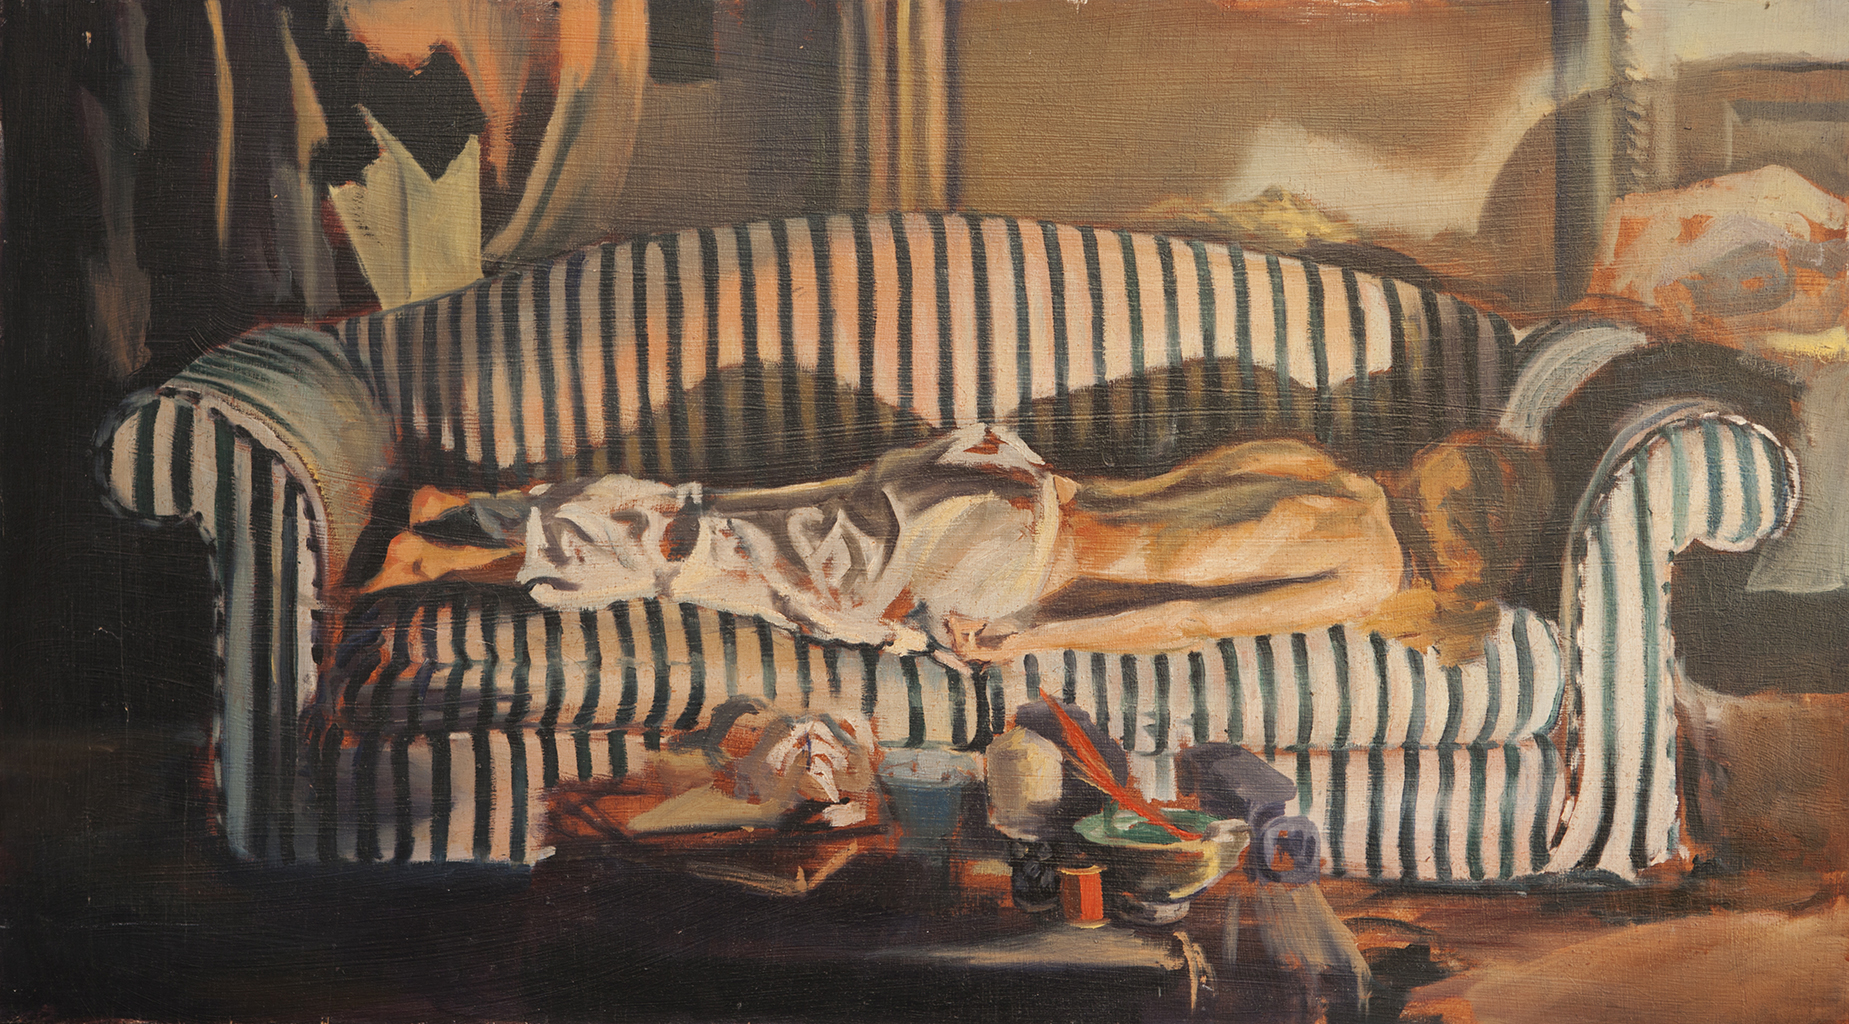 'Annick resting on the striped couch'. Oil on wood panel. 97cm x 53cm. (2009).jpg